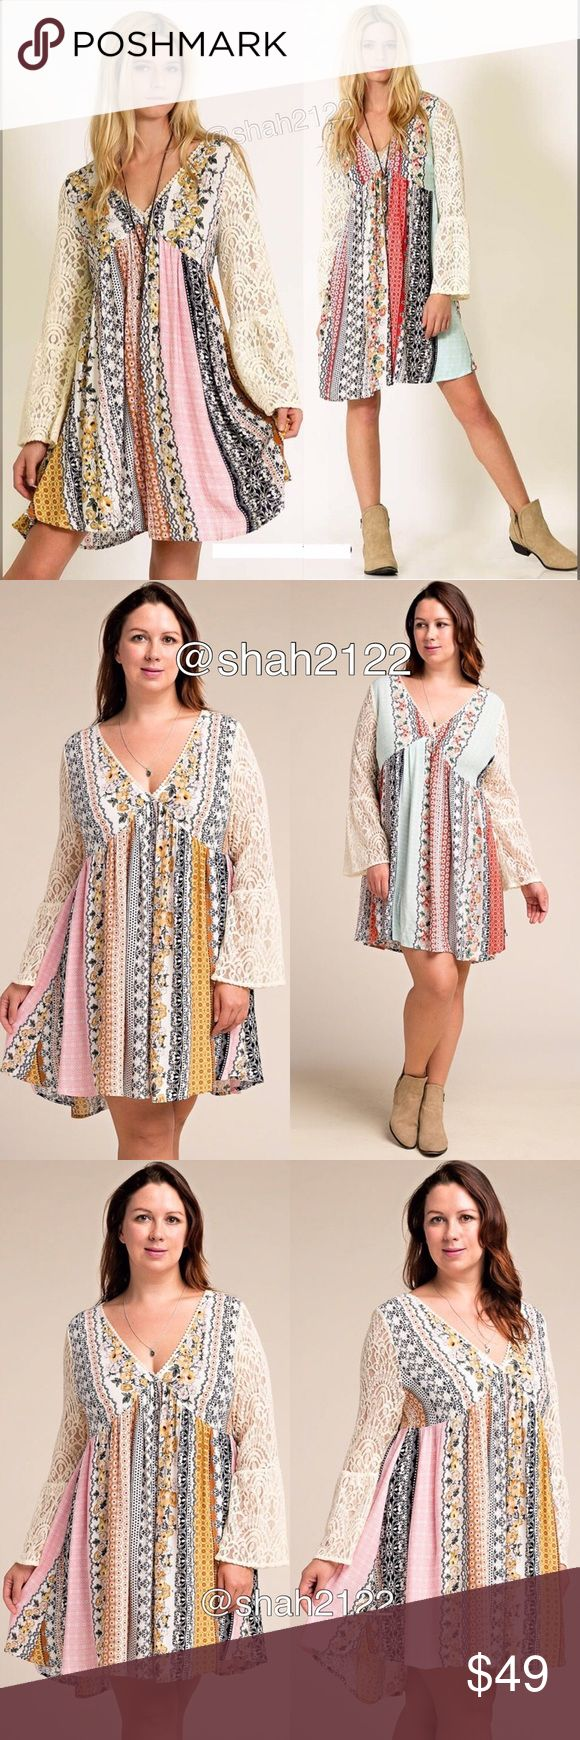 """Plus size lace sleeves boho printed dress flowy 🚩price is firm‼️only mustard pink combo is available.. ‼️2Xl can fit a 3xl    ⭐️NWT retail. -plus size dress- -sheer Lace long bell flare sleeves dress. -beautiful patch work floral print. -boho chic mini hi lo low dress....sexy, flowy  ,comfy  summer sun dress.  Measurements : 👉(Armpit to armpit 1Xl is 26"""" /2Xl is 27"""");  👉(Total Length 1Xl-2Xl is 36"""" at front and  backside length is 38"""");  👉sleeves length is 24.5-25.5""""  ⭐Material  is…"""